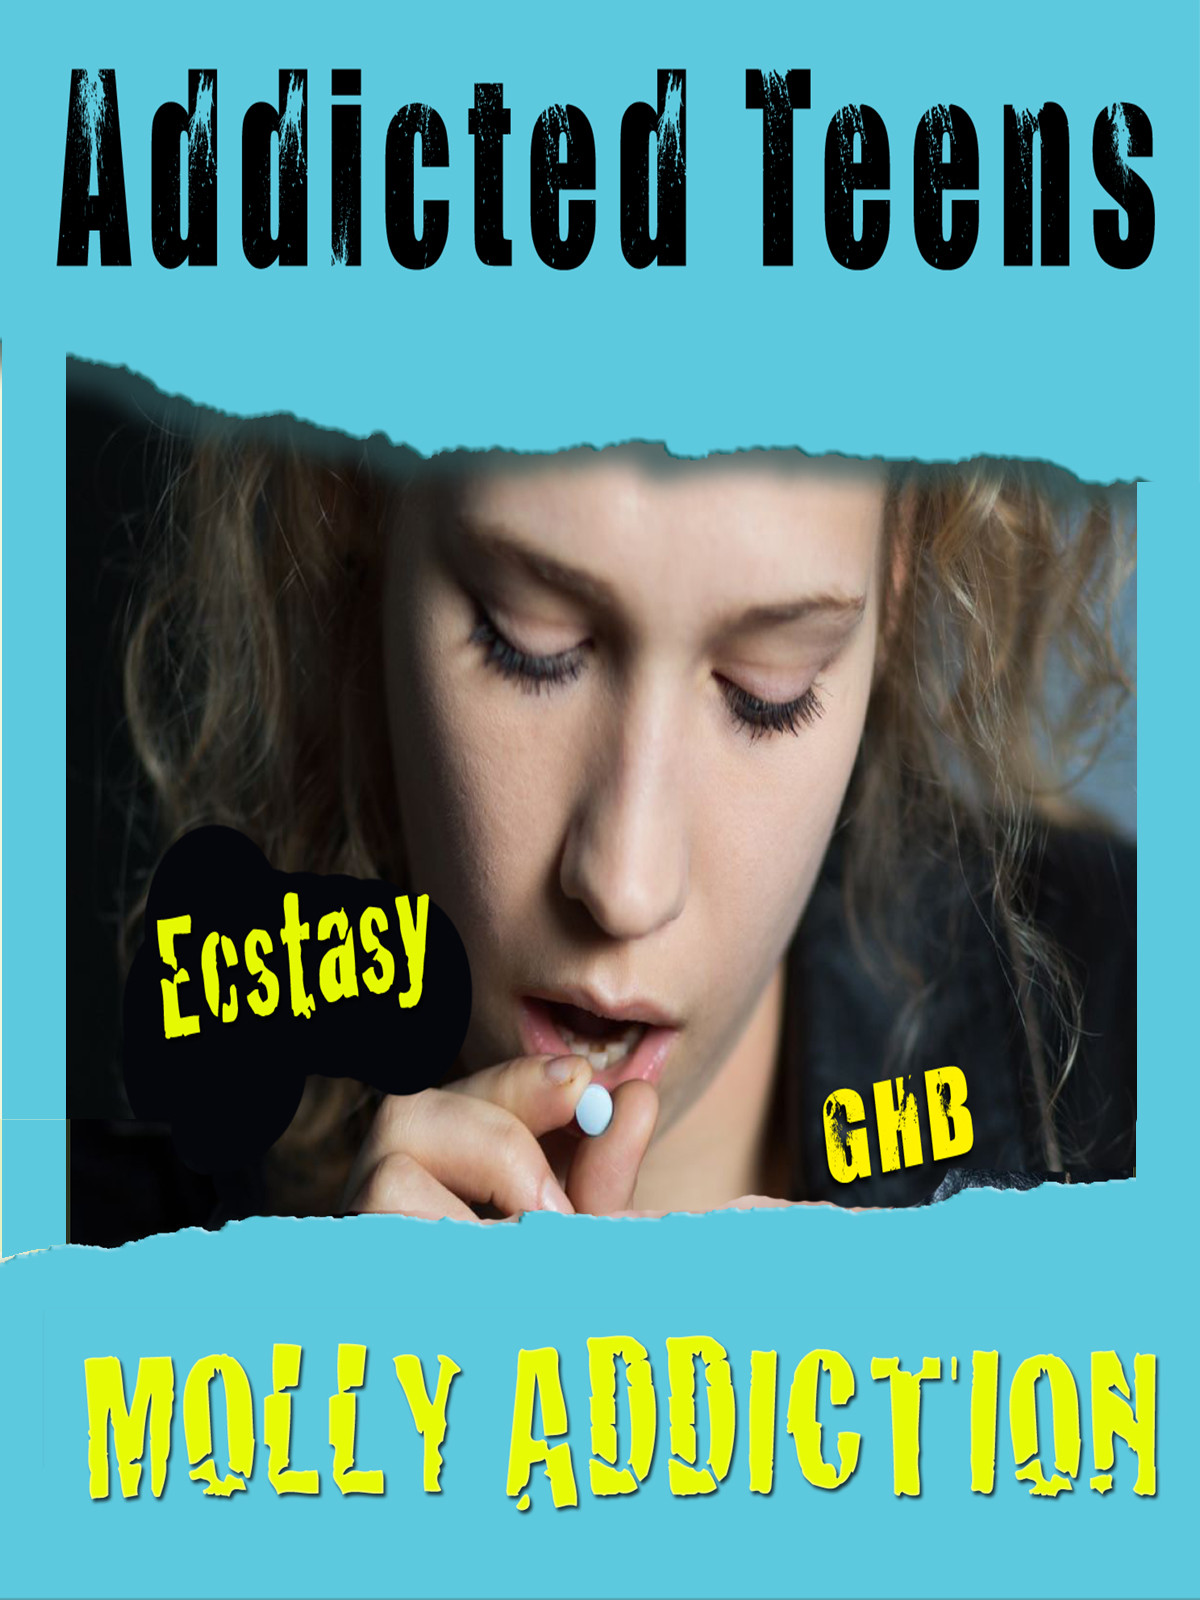 Q509 - Addicted Teens Molly, MDMA & Ecstasy Addiction